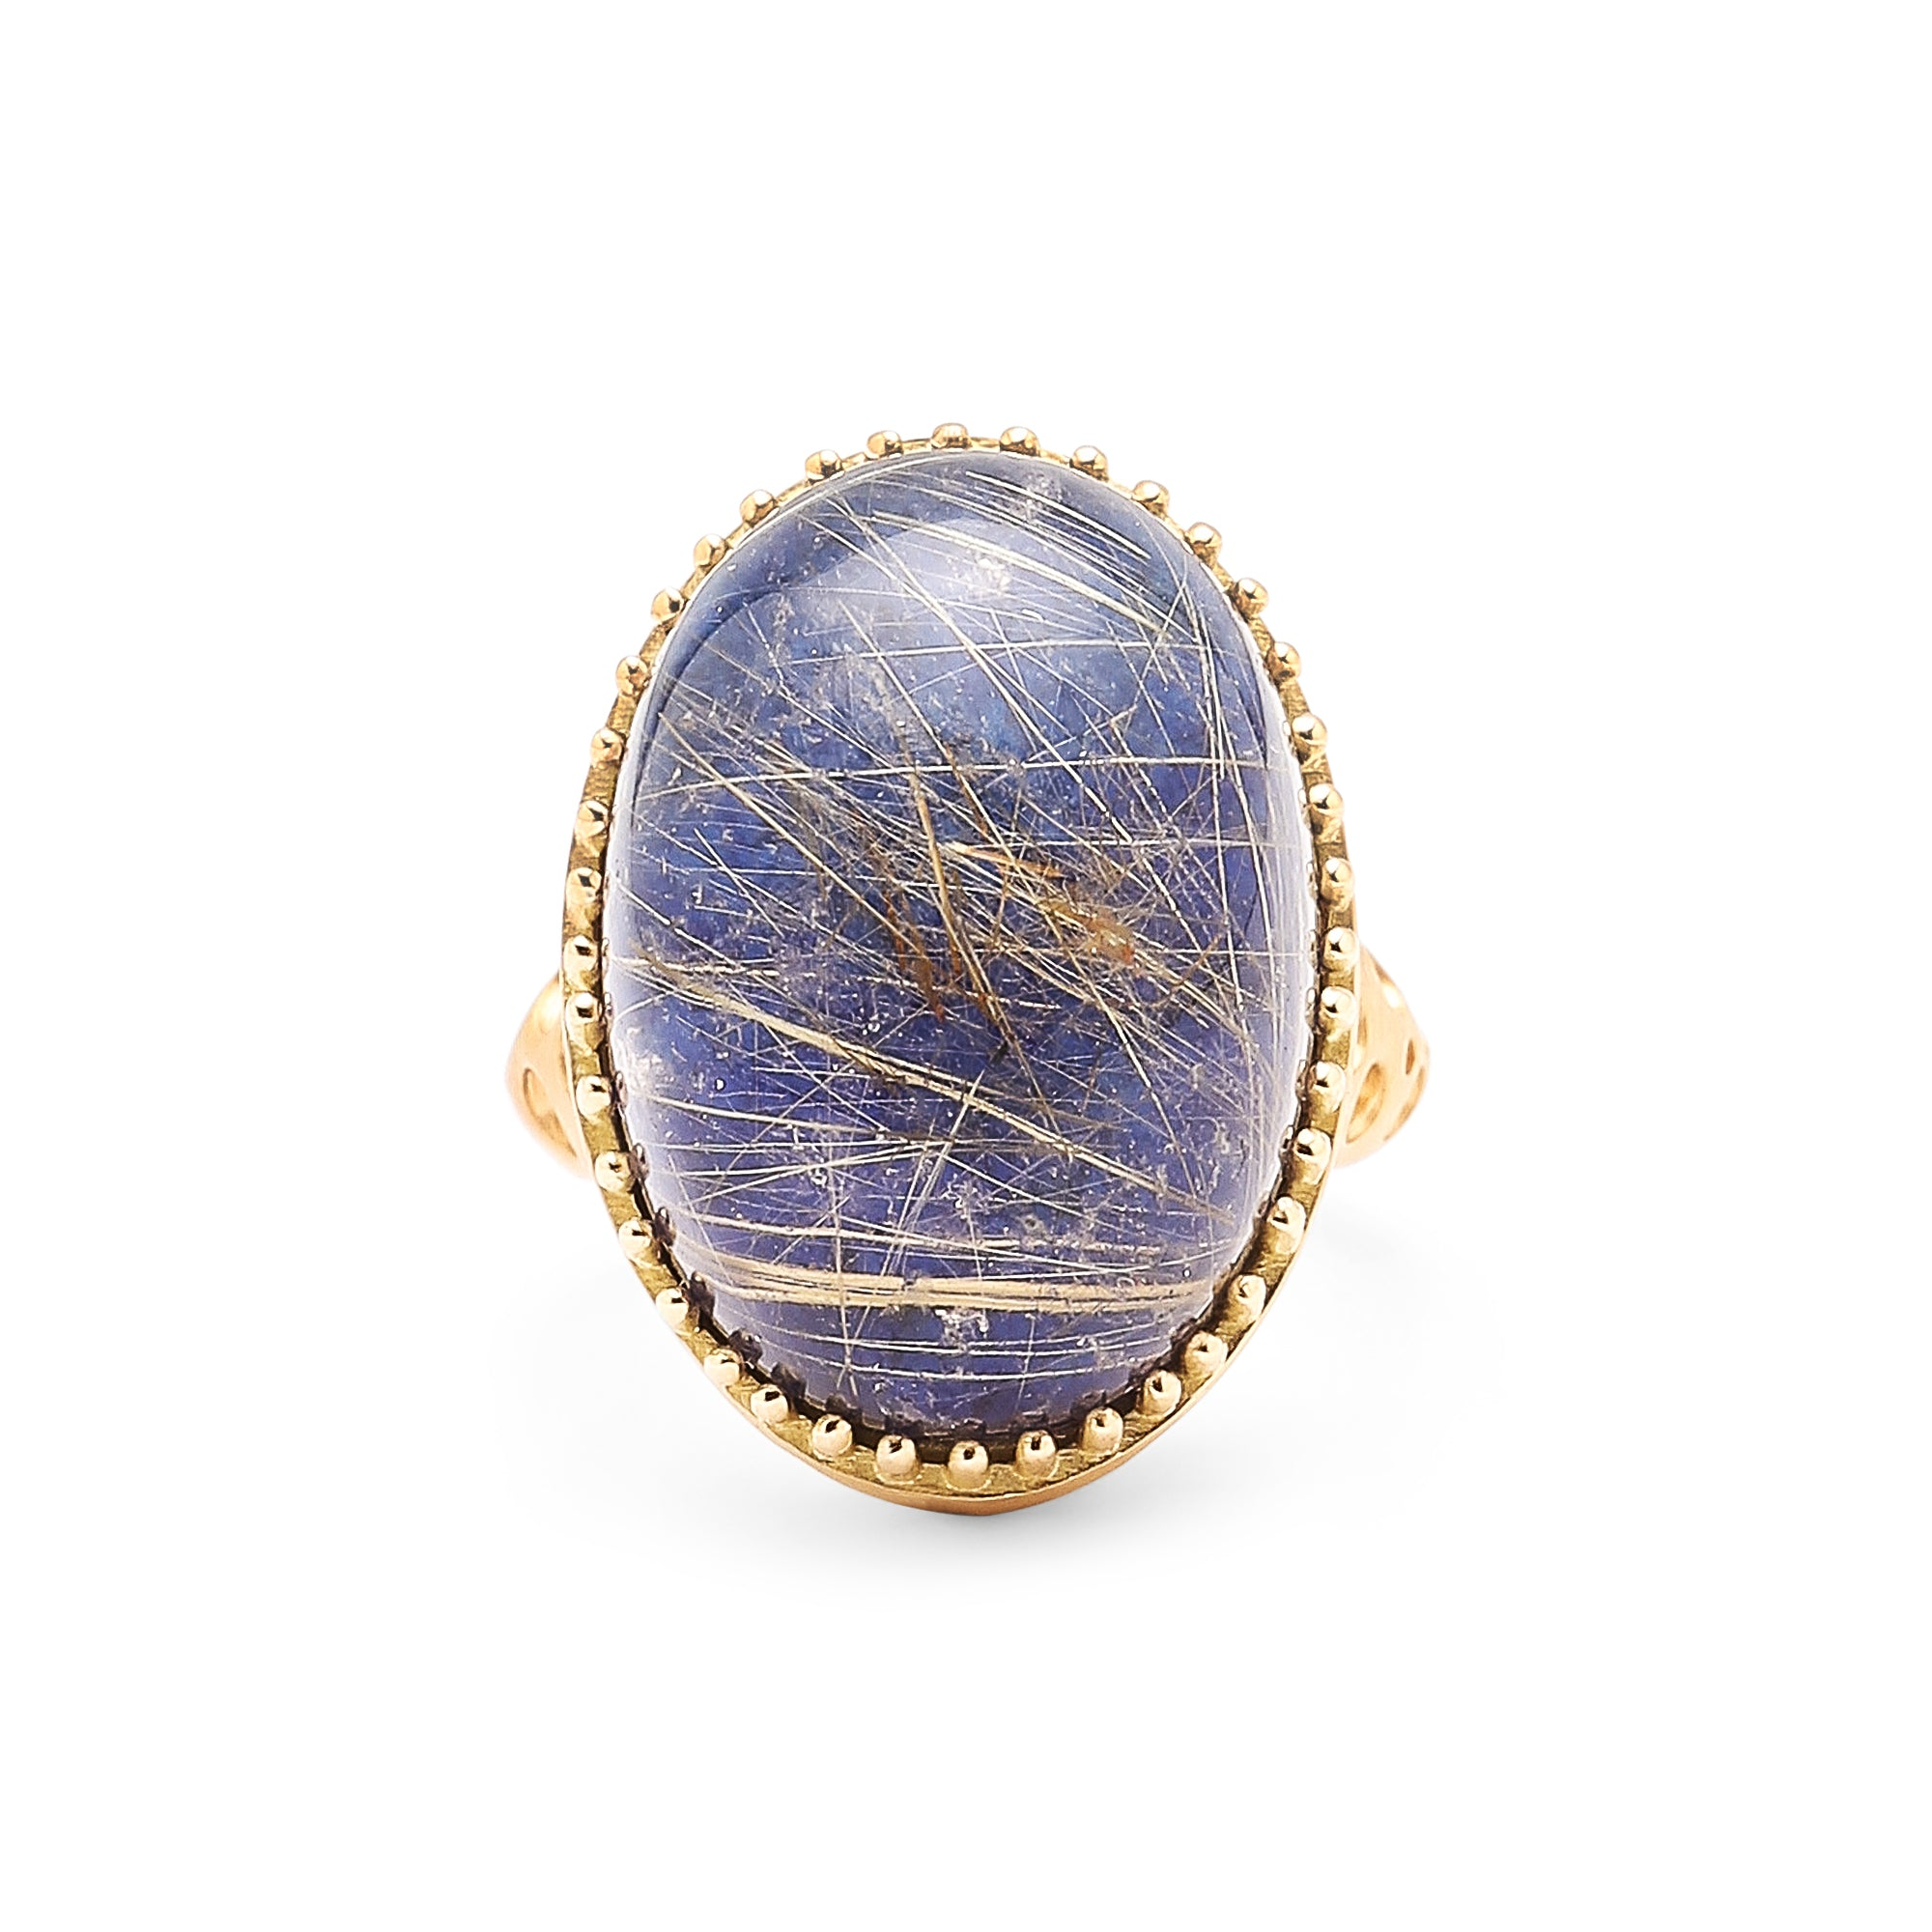 Oval Rutilated Quartz over Lapis Lazuli Doublet Ring